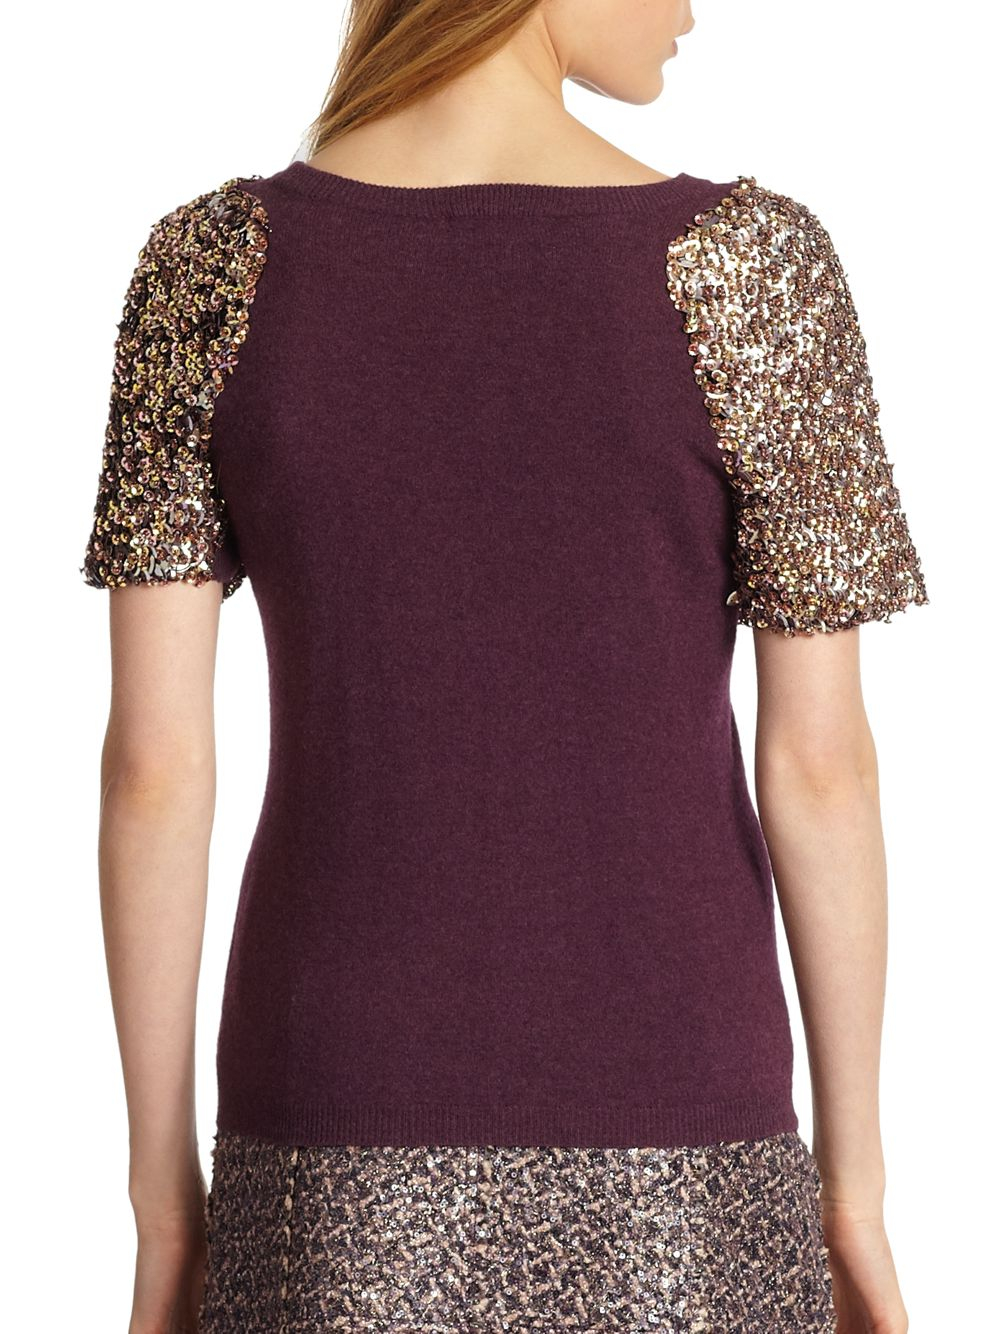 Tory burch Sequin-Sleeved Sweater in Purple | Lyst